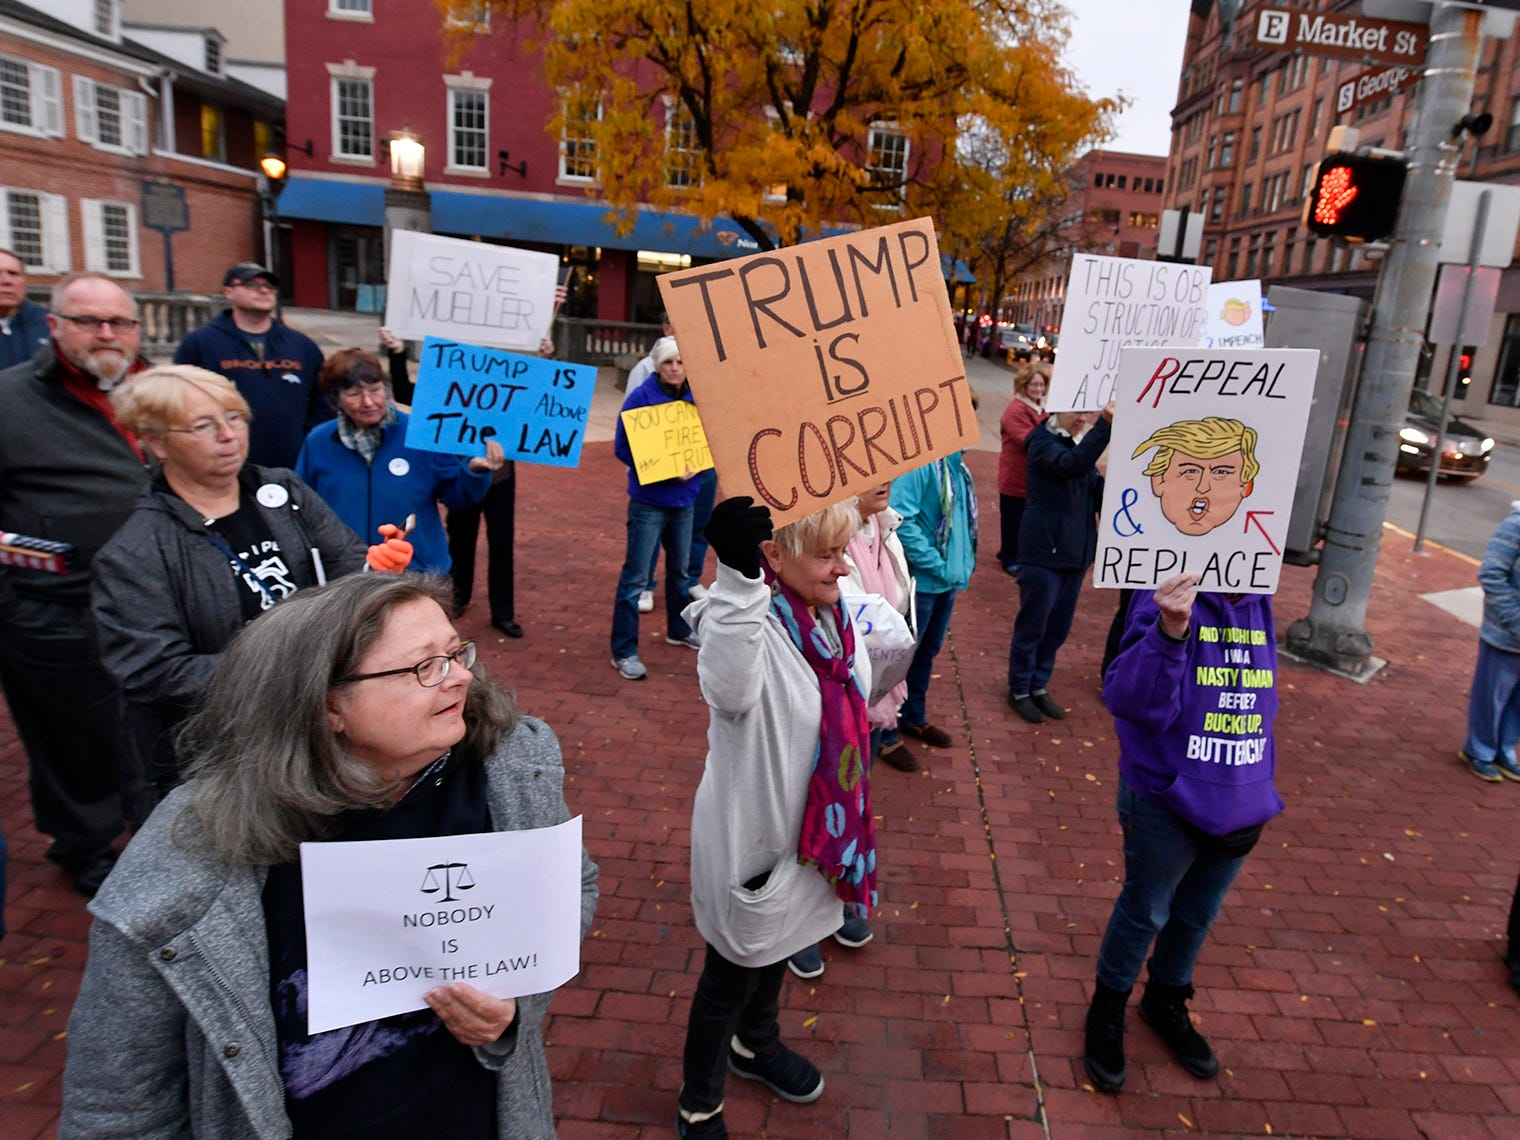 A group of about 50 people protest on Continental Square in York following the forced resignation of Attorney General Jeff Sessions, Thursday, November 7, 2018. The event was sponsored by Indivisible York.